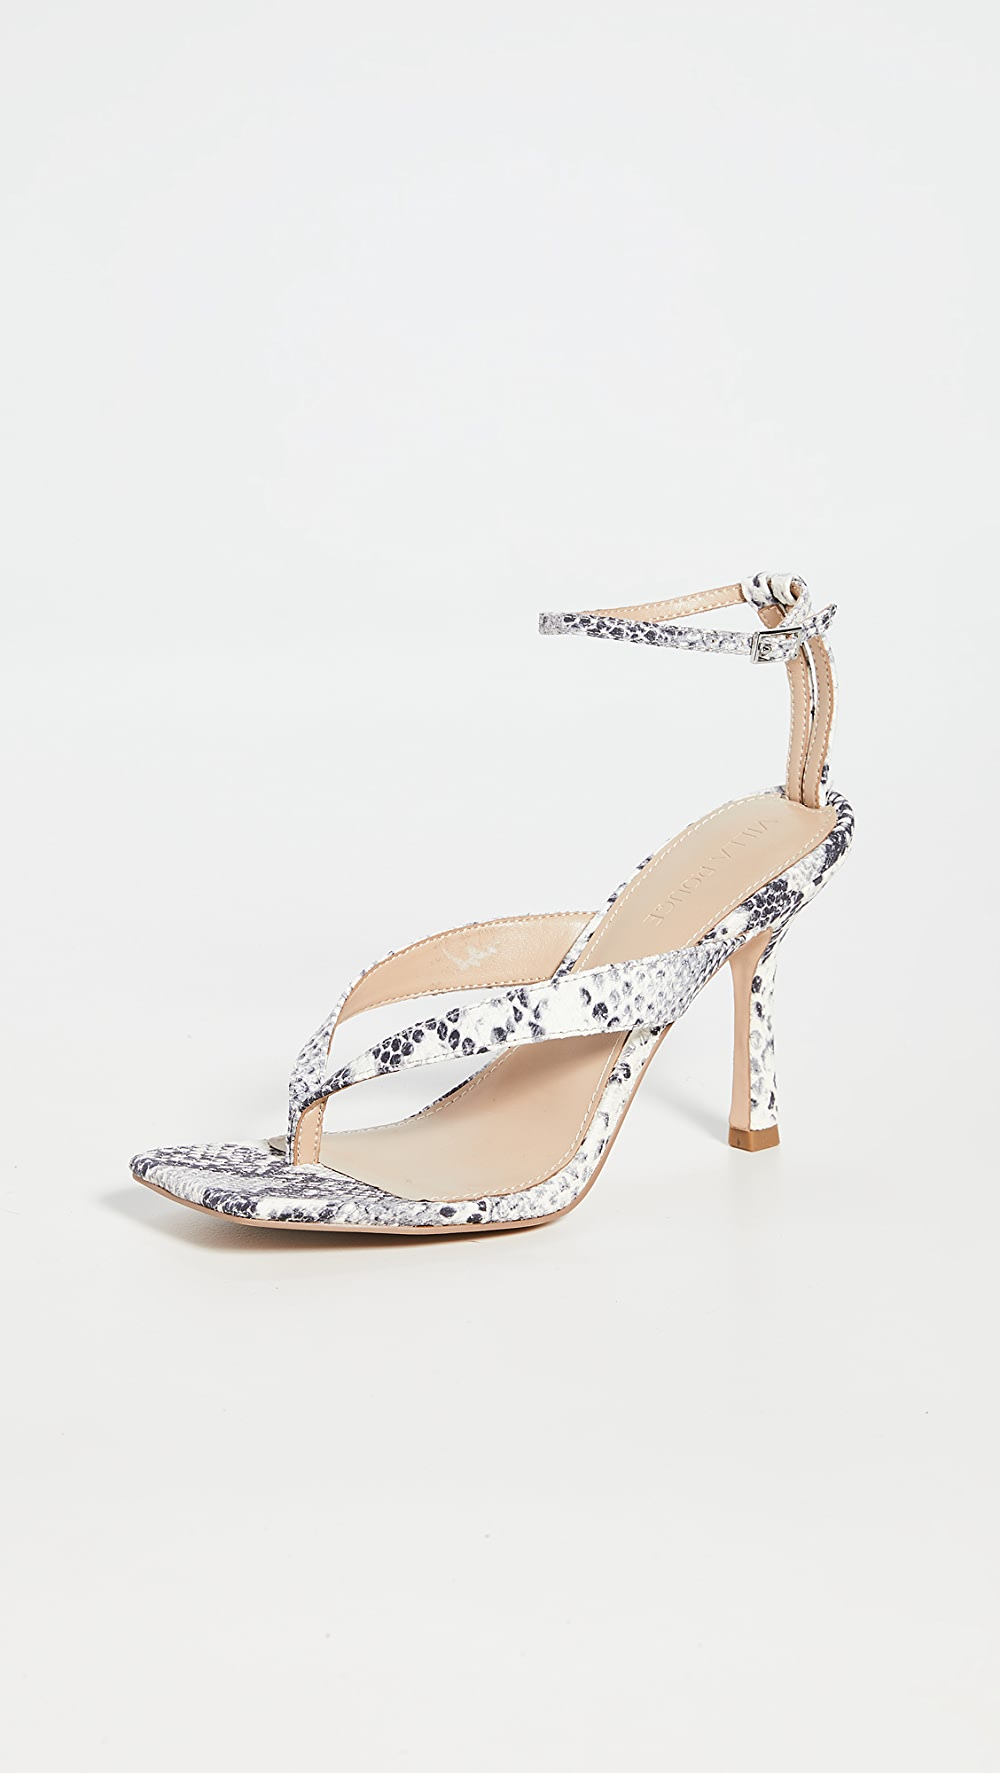 Adroit Villa Rouge - Vera Sandals Goods Of Every Description Are Available